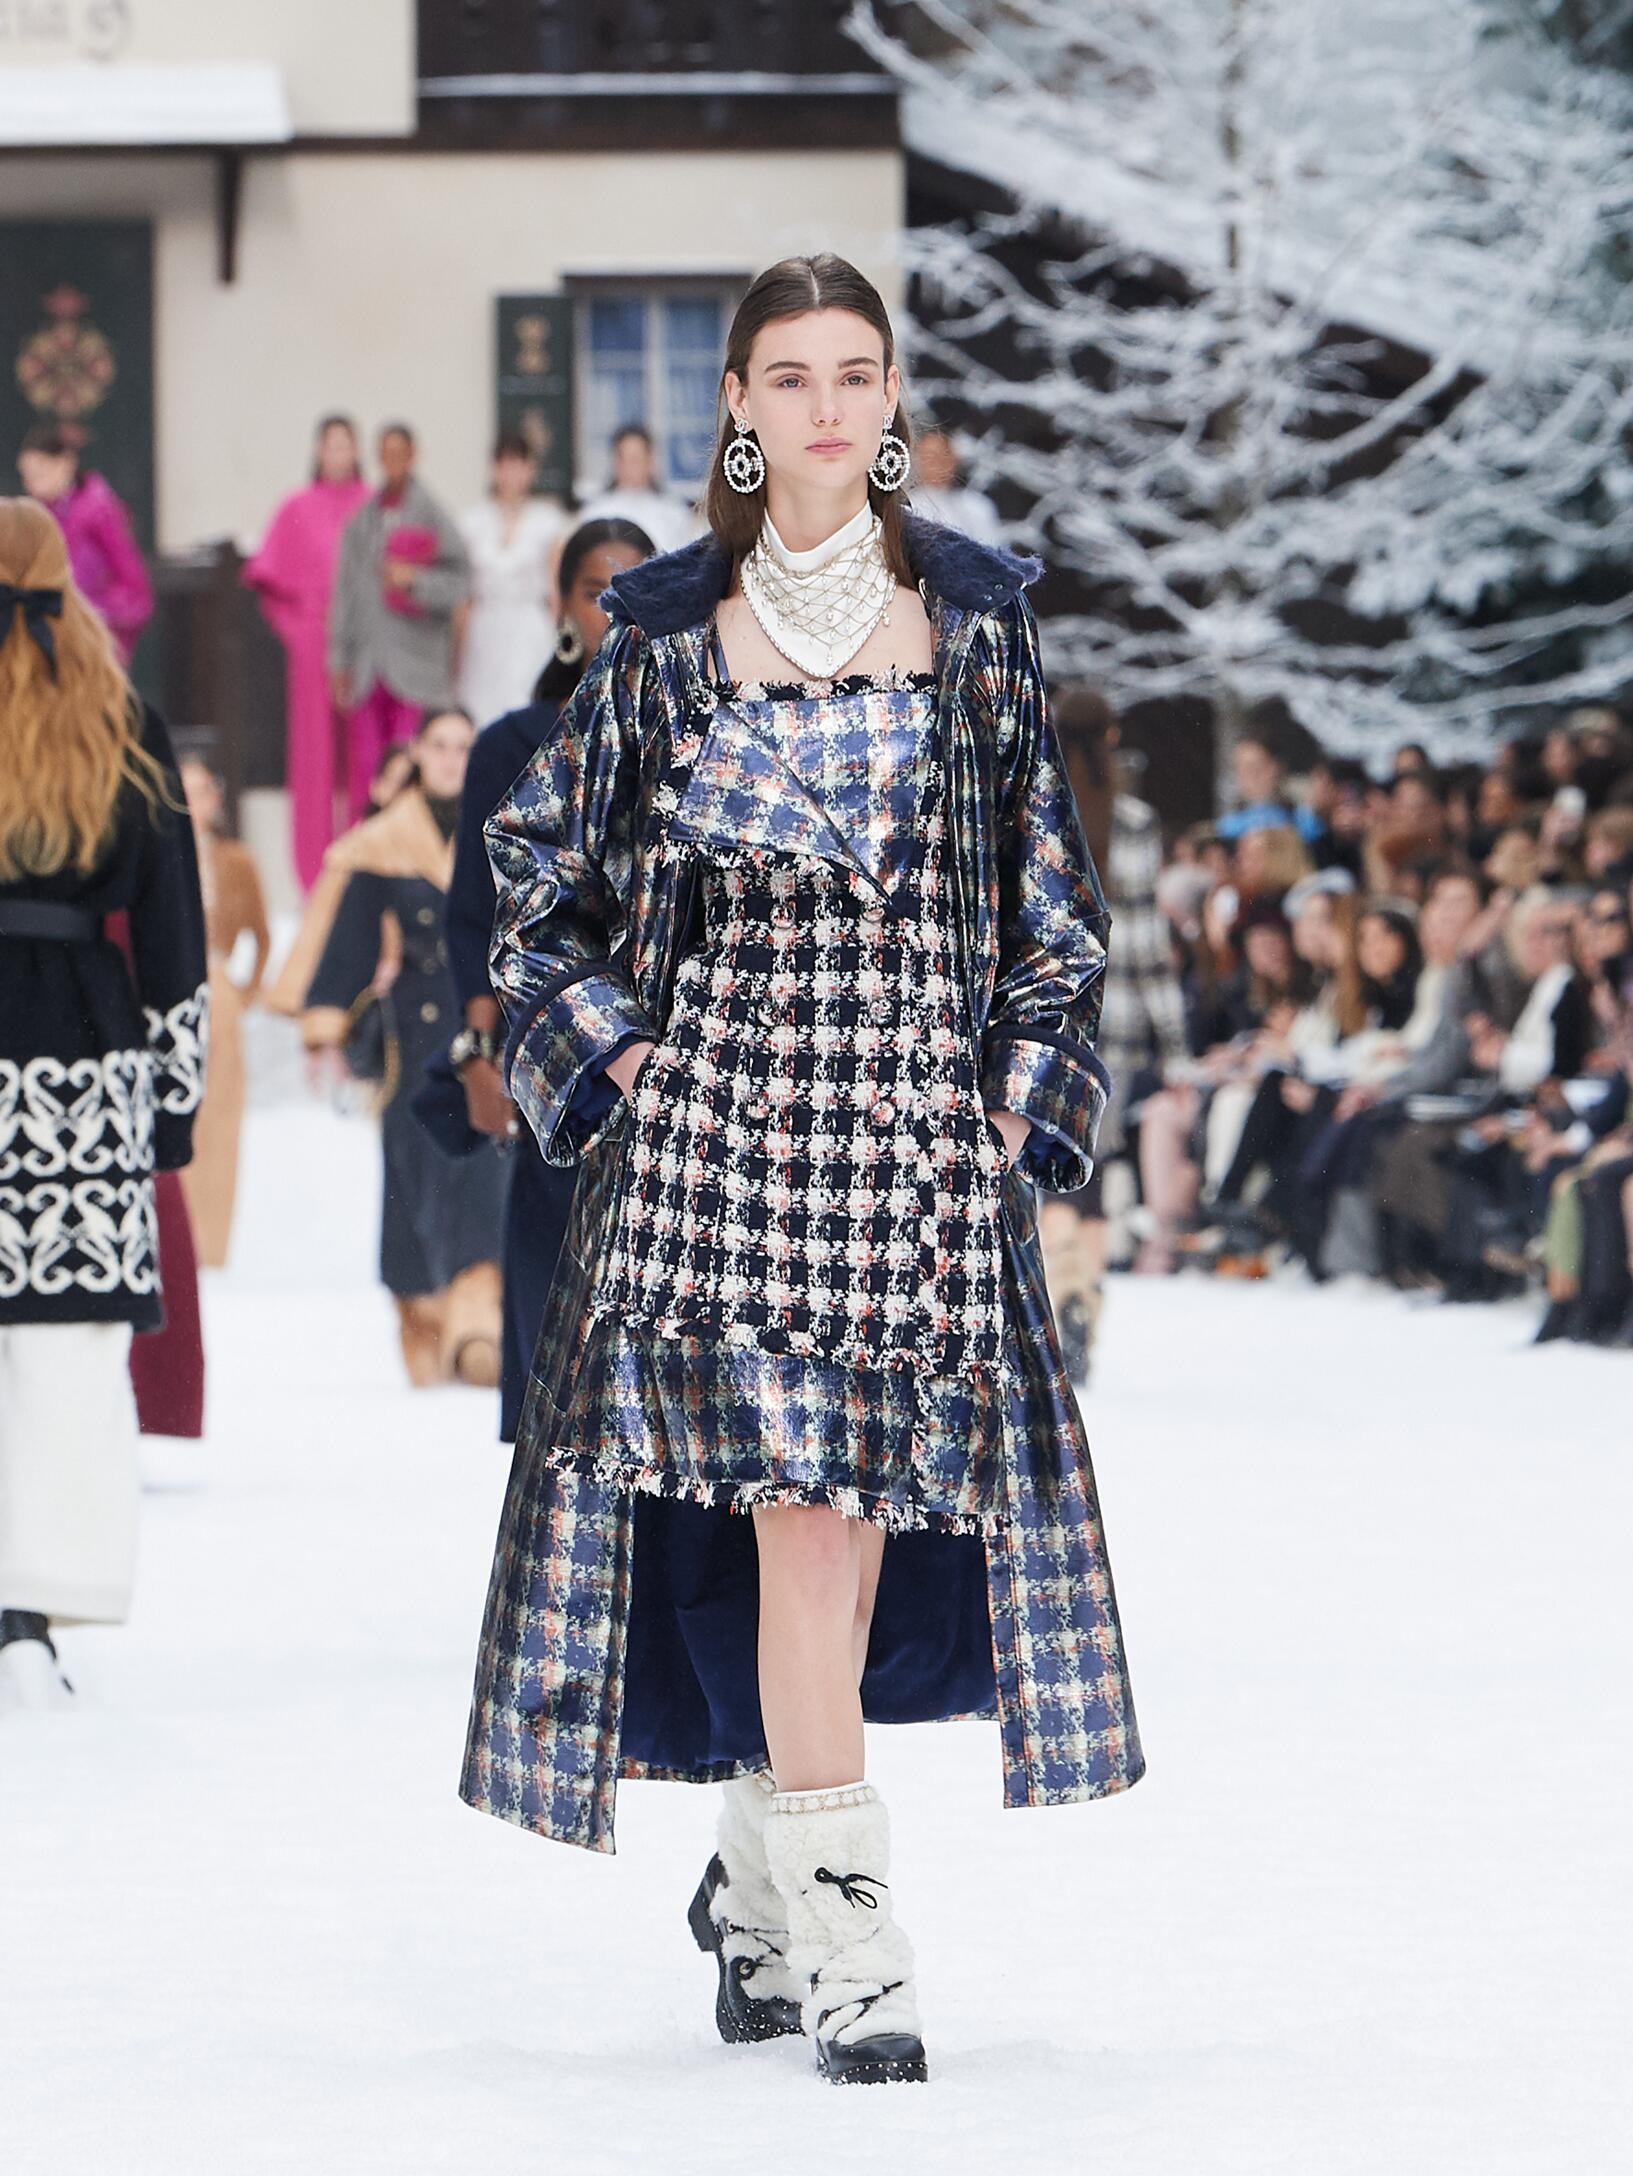 Catwalk Chanel Woman Fashion Show Winter 2019